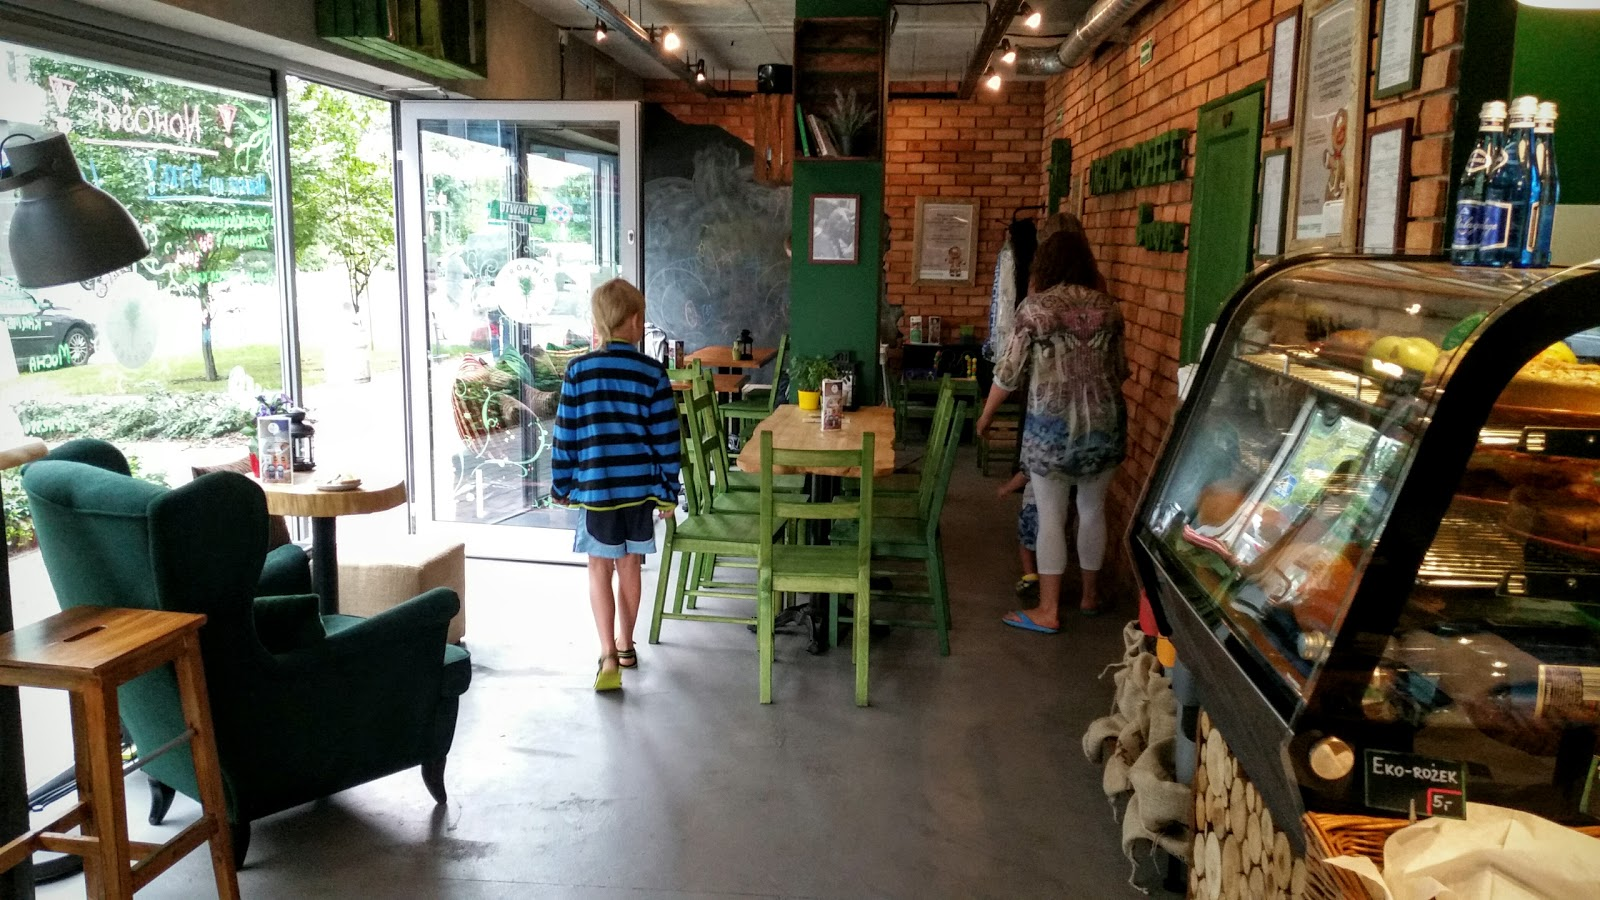 Organic Coffee & more: A Work-Friendly Place in Warsaw